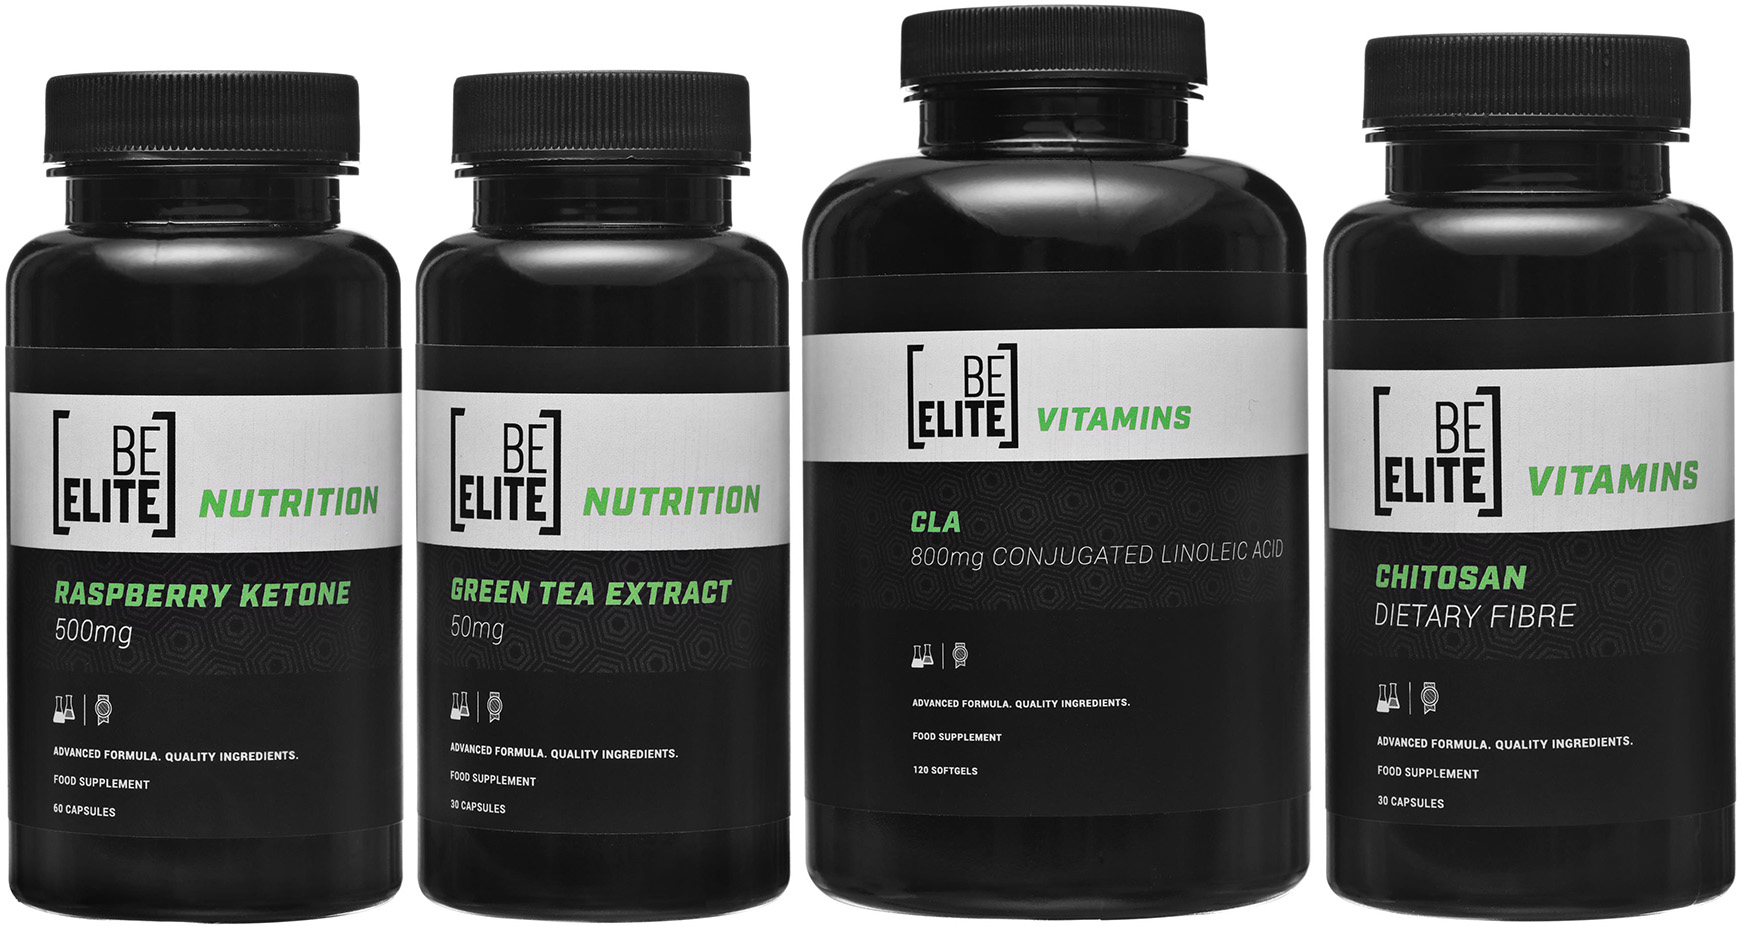 BeElite Weight Management Bundle | Energi og kosttilskud > Tilbebør